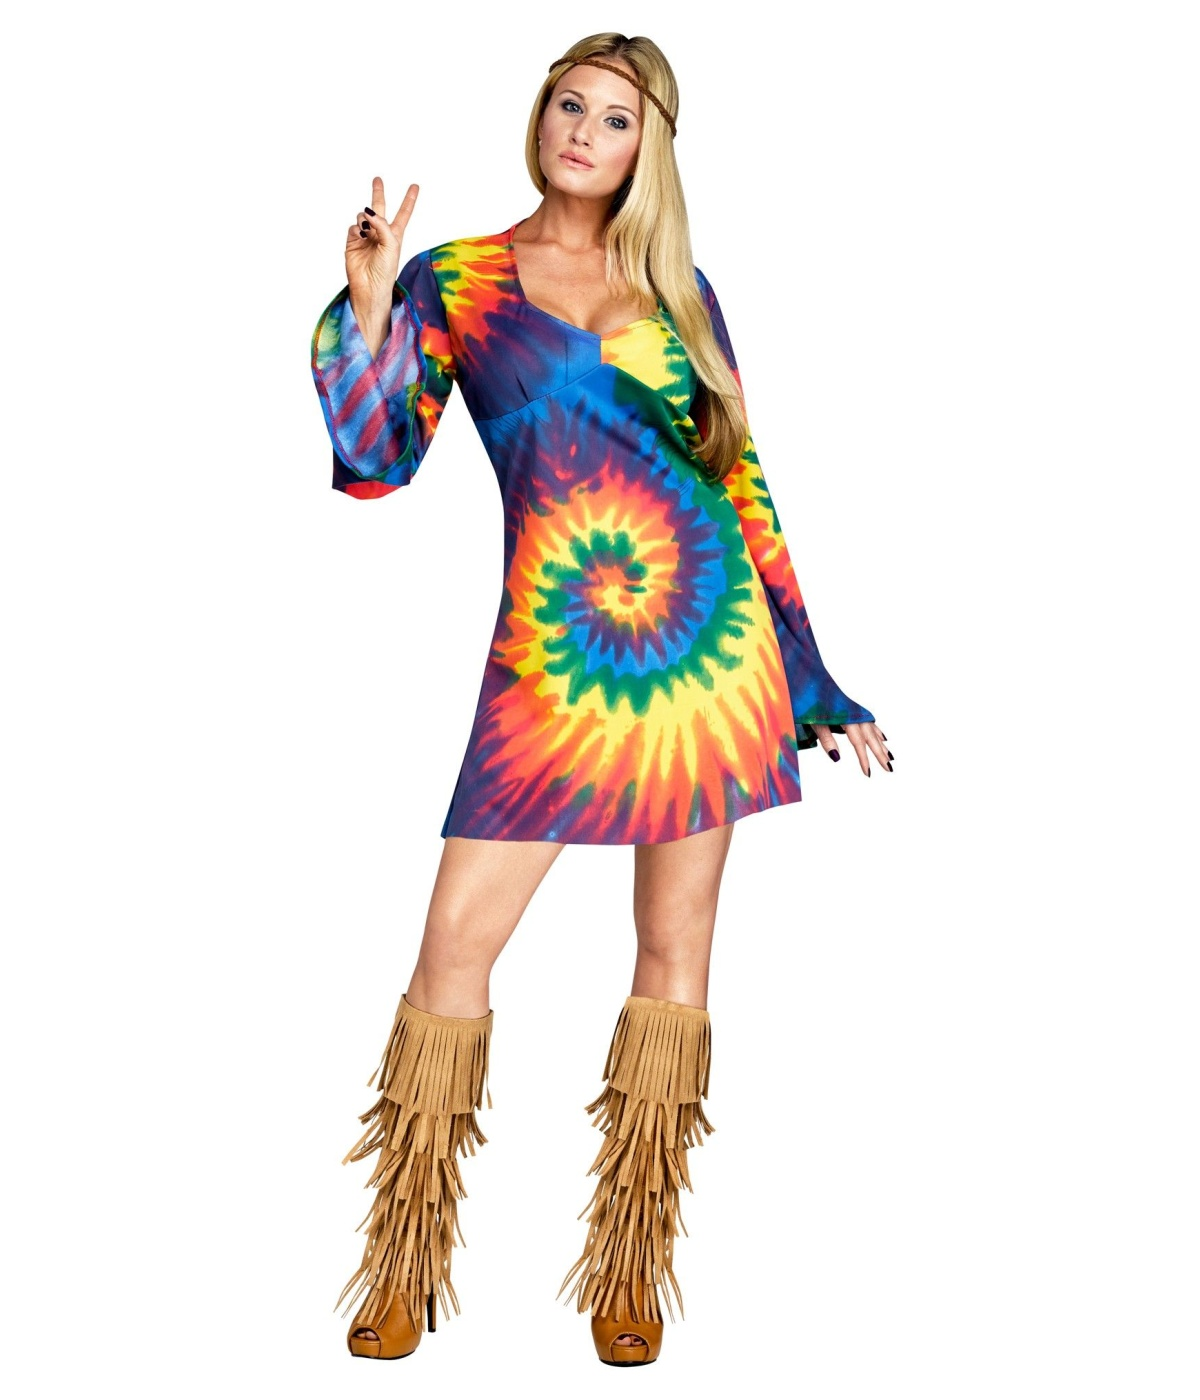 d206bf7ab12 Tie Dye Hippie Dress Womens Costume - Hippie costumes